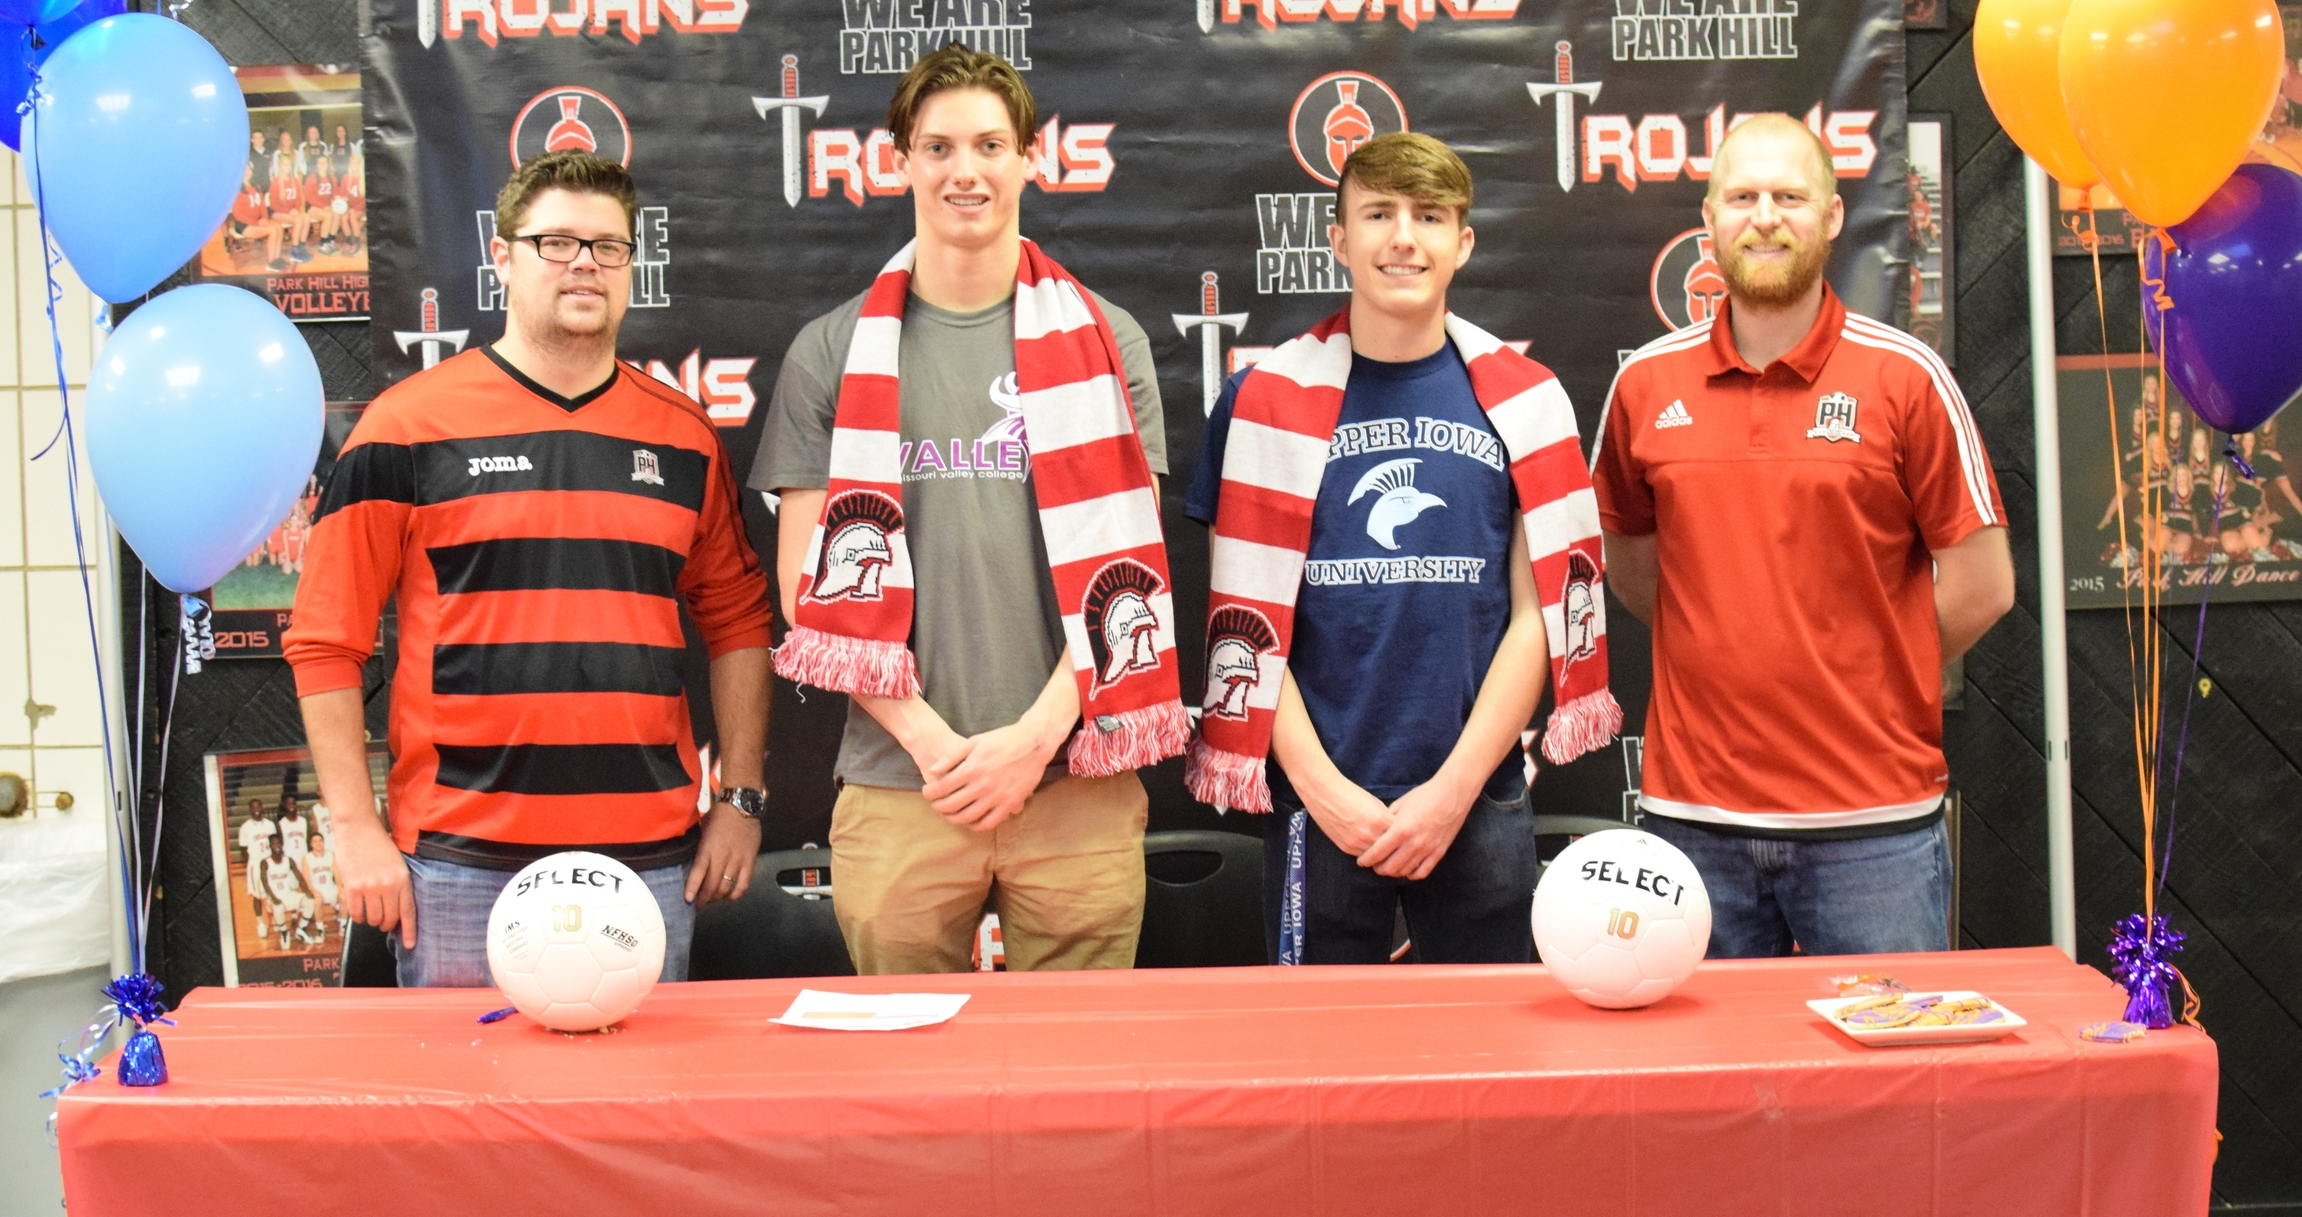 BRYCE MERENESS/Citizen photo Park Hill seniors Peyton LaFerla, left center, and Christian Fullmer, right center, recently signed to play collegiate soccer in a ceremony held Friday, Feb. 26 at Park Hill High School in Kansas City, Mo. LaFerla signed at Missouri Valley, an NAIA school, while Fullmer inked his commitment to Upper Iowa, an NCAA Division II program